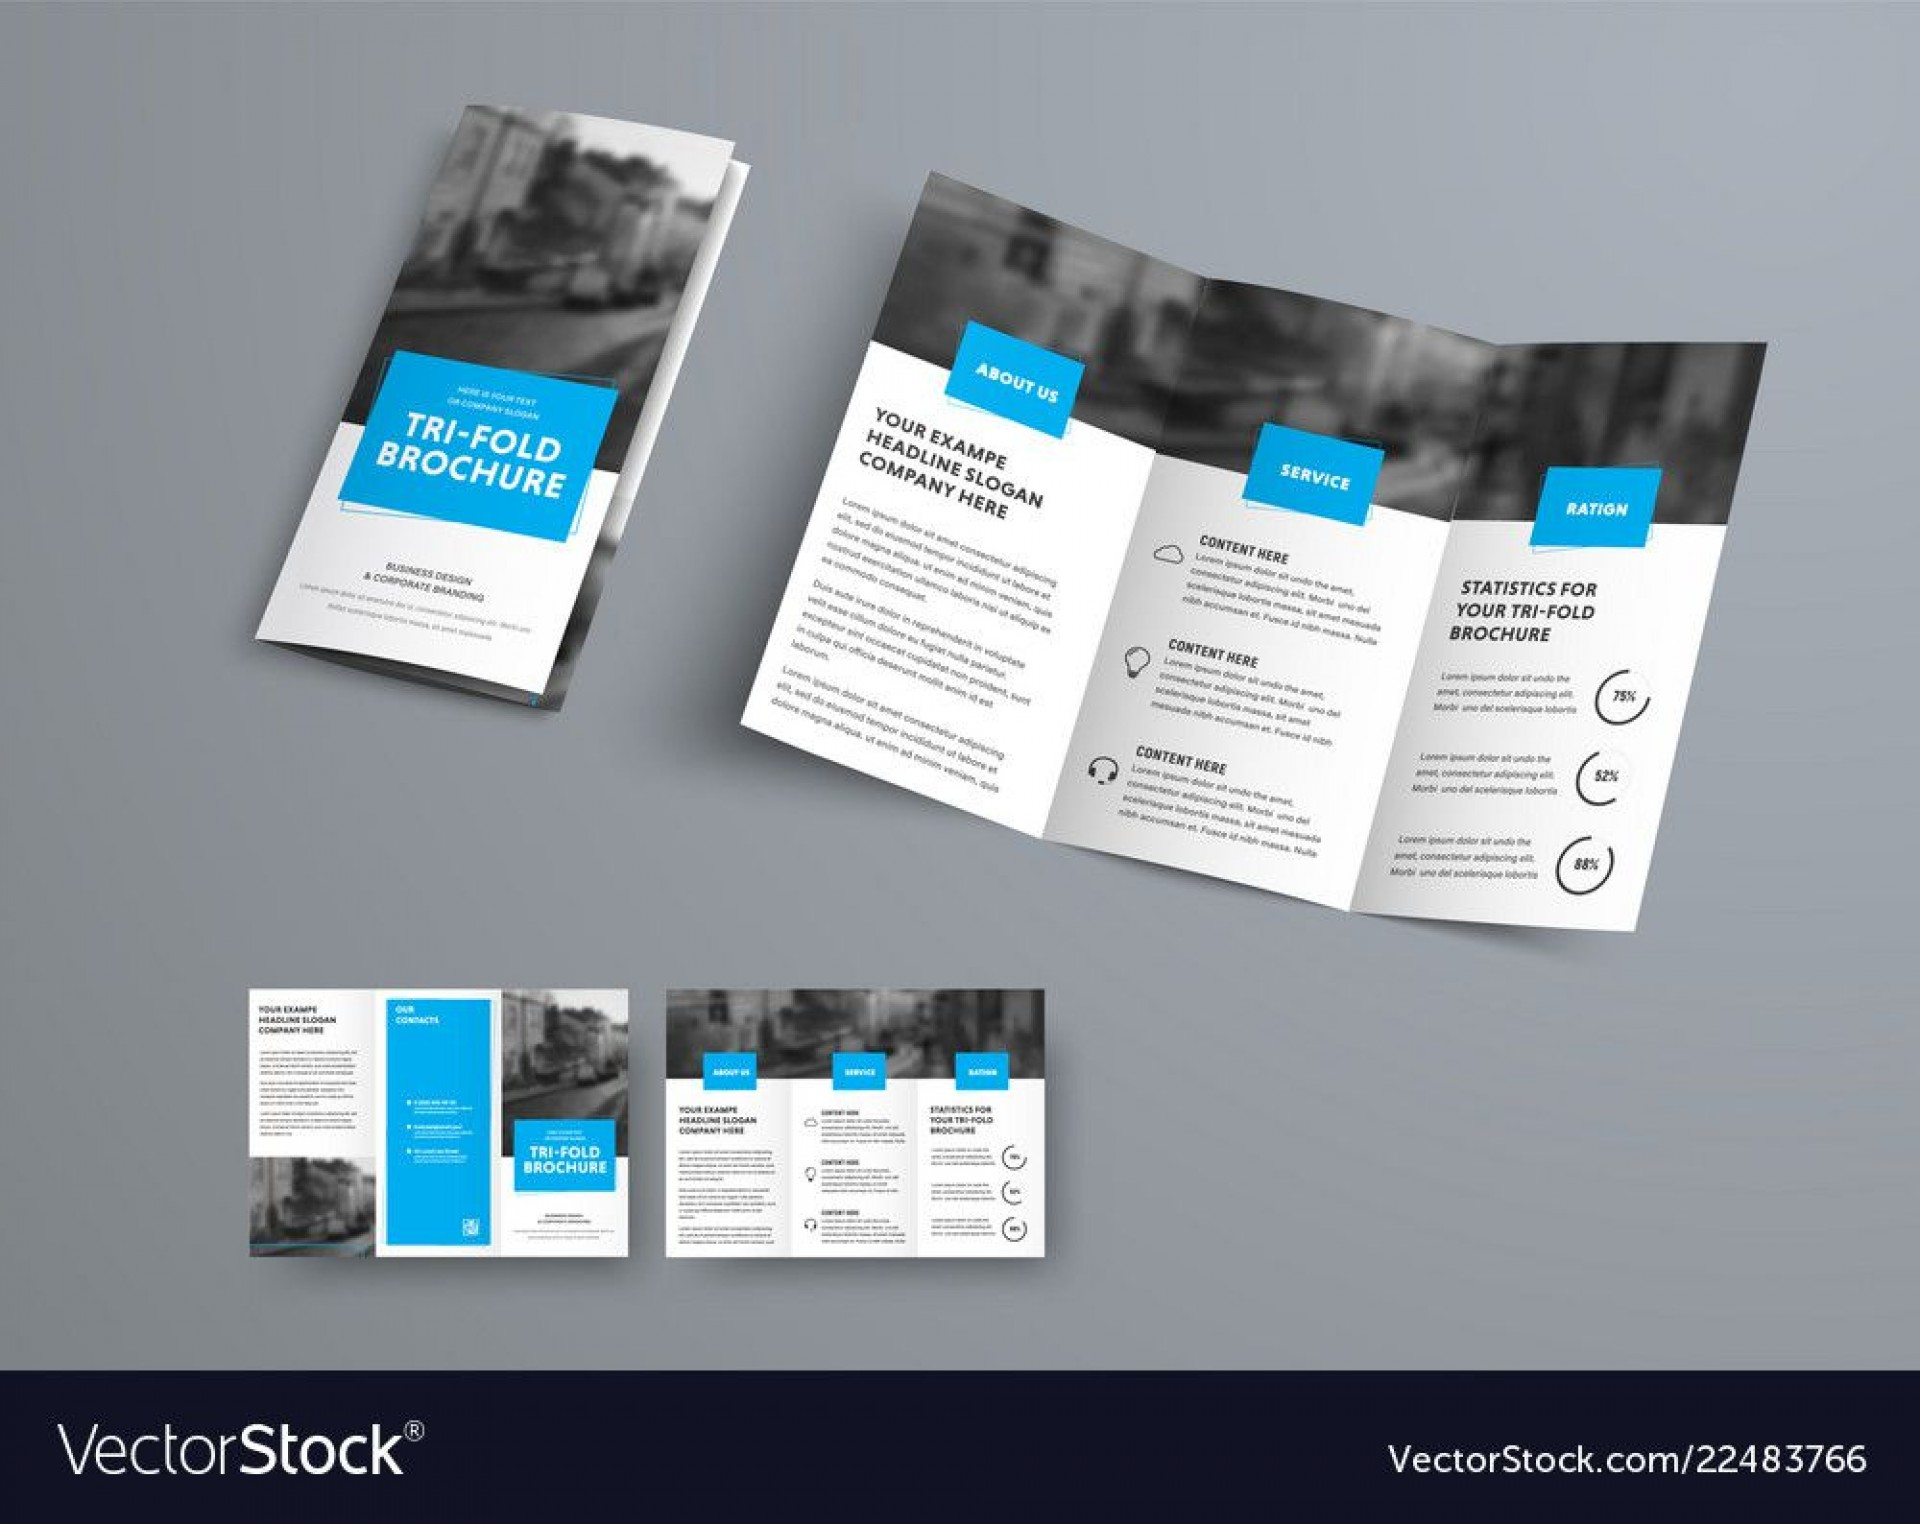 008 Fascinating Three Fold Brochure Template Example  Word Free 3 Psd Download1920